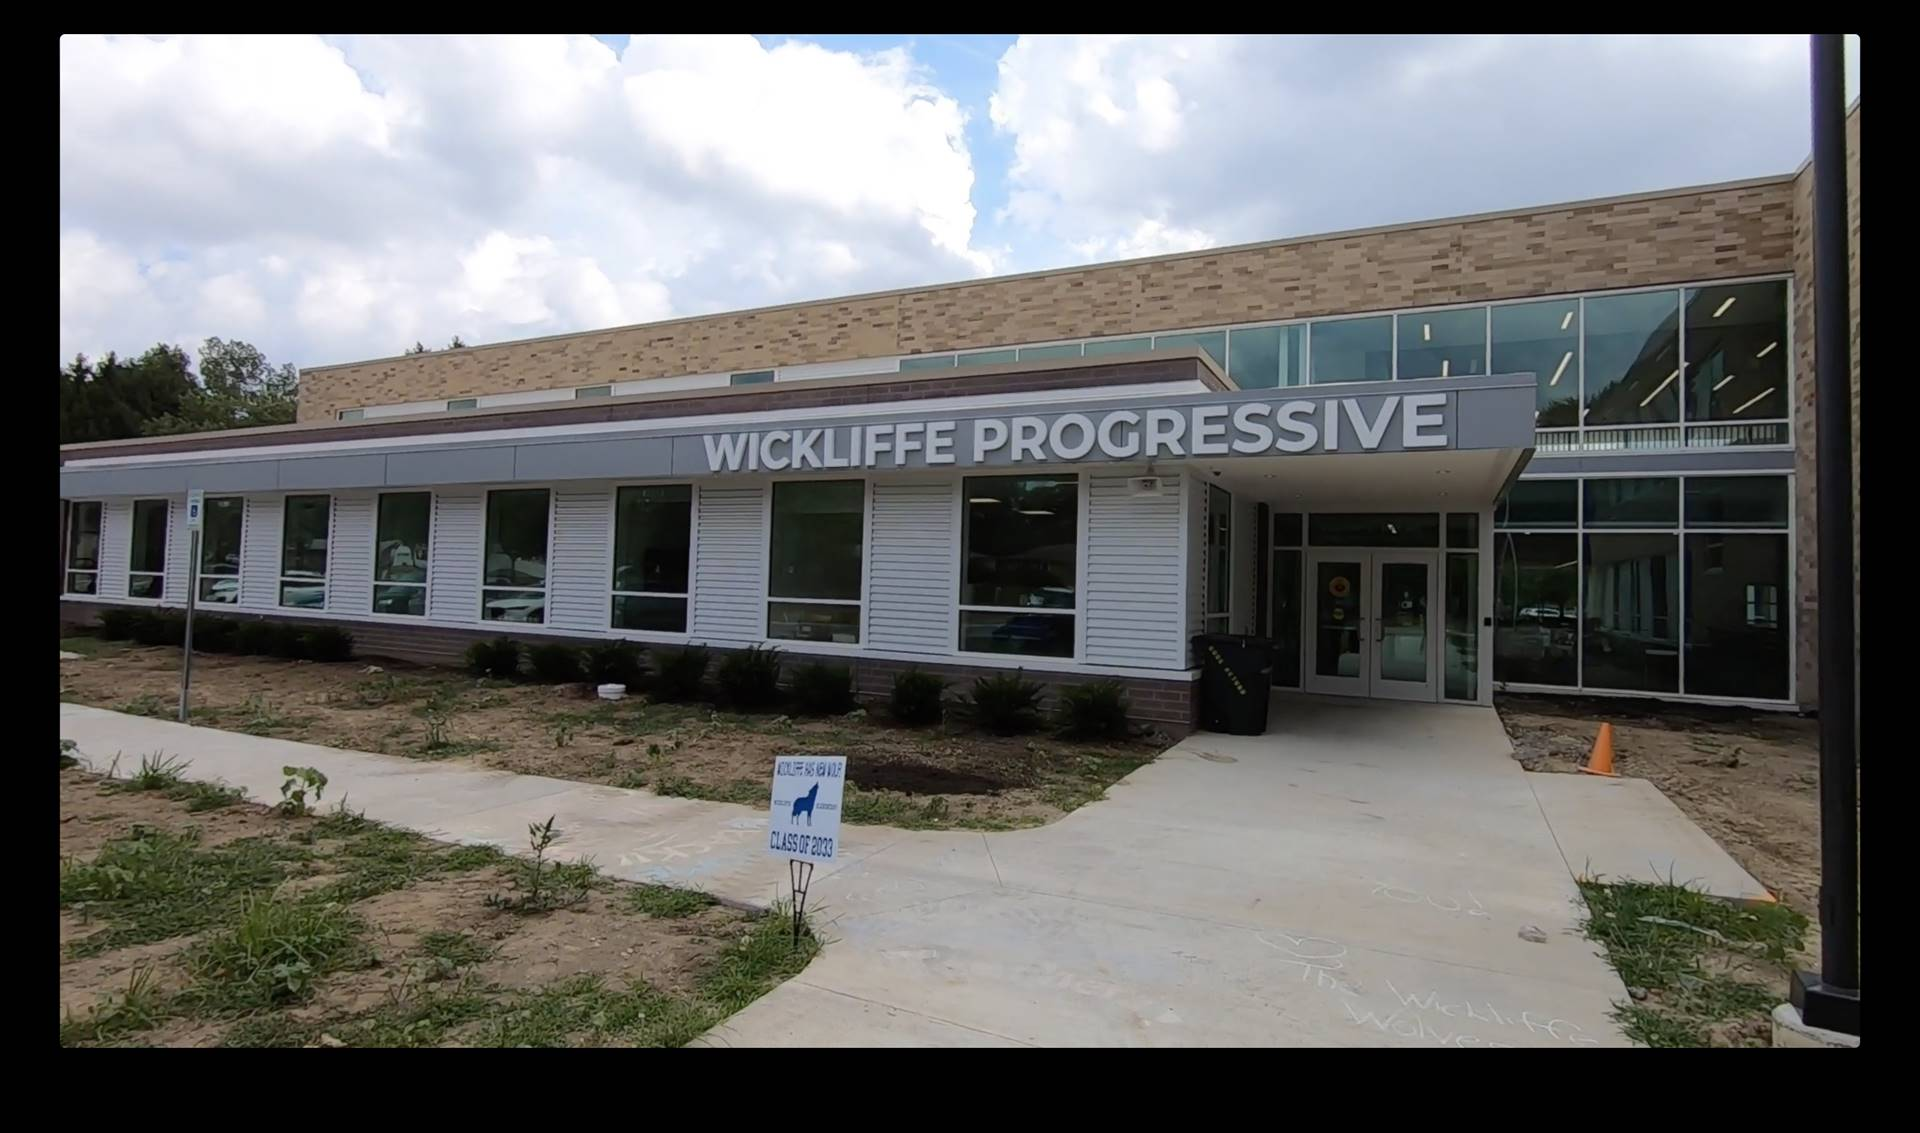 An exterior view of Wickliffe